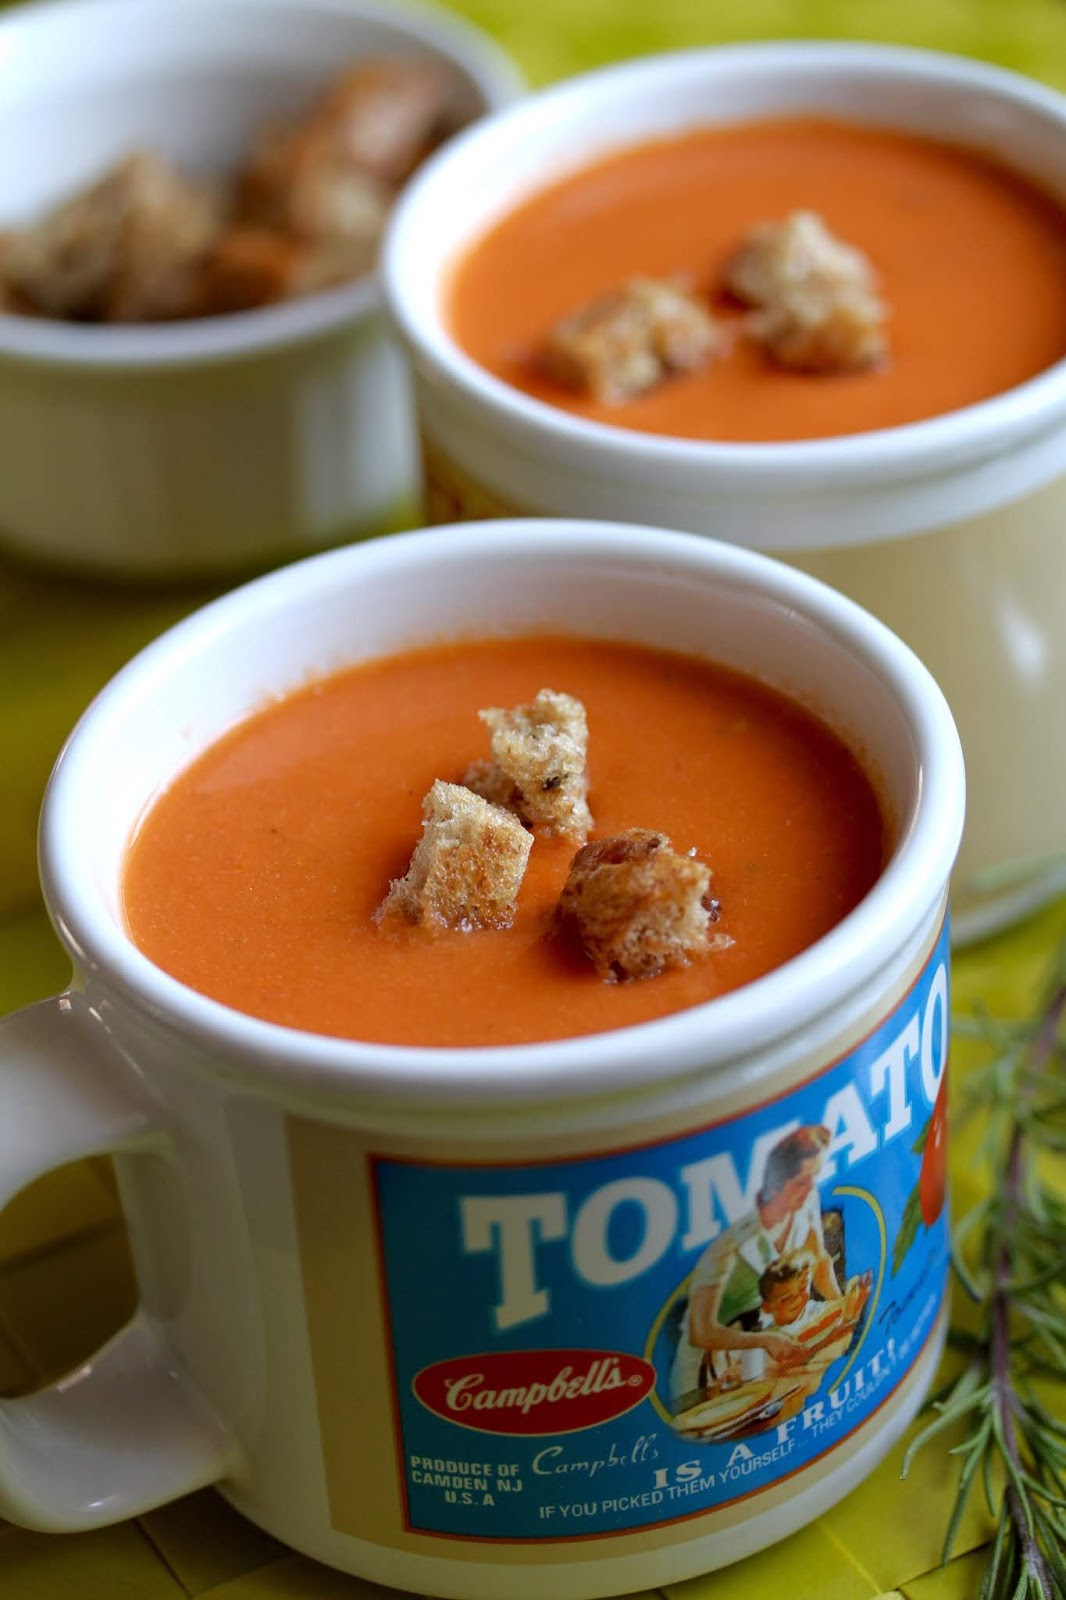 Smiths Vegan Kitchen Creamless Creamy Tomato Soup